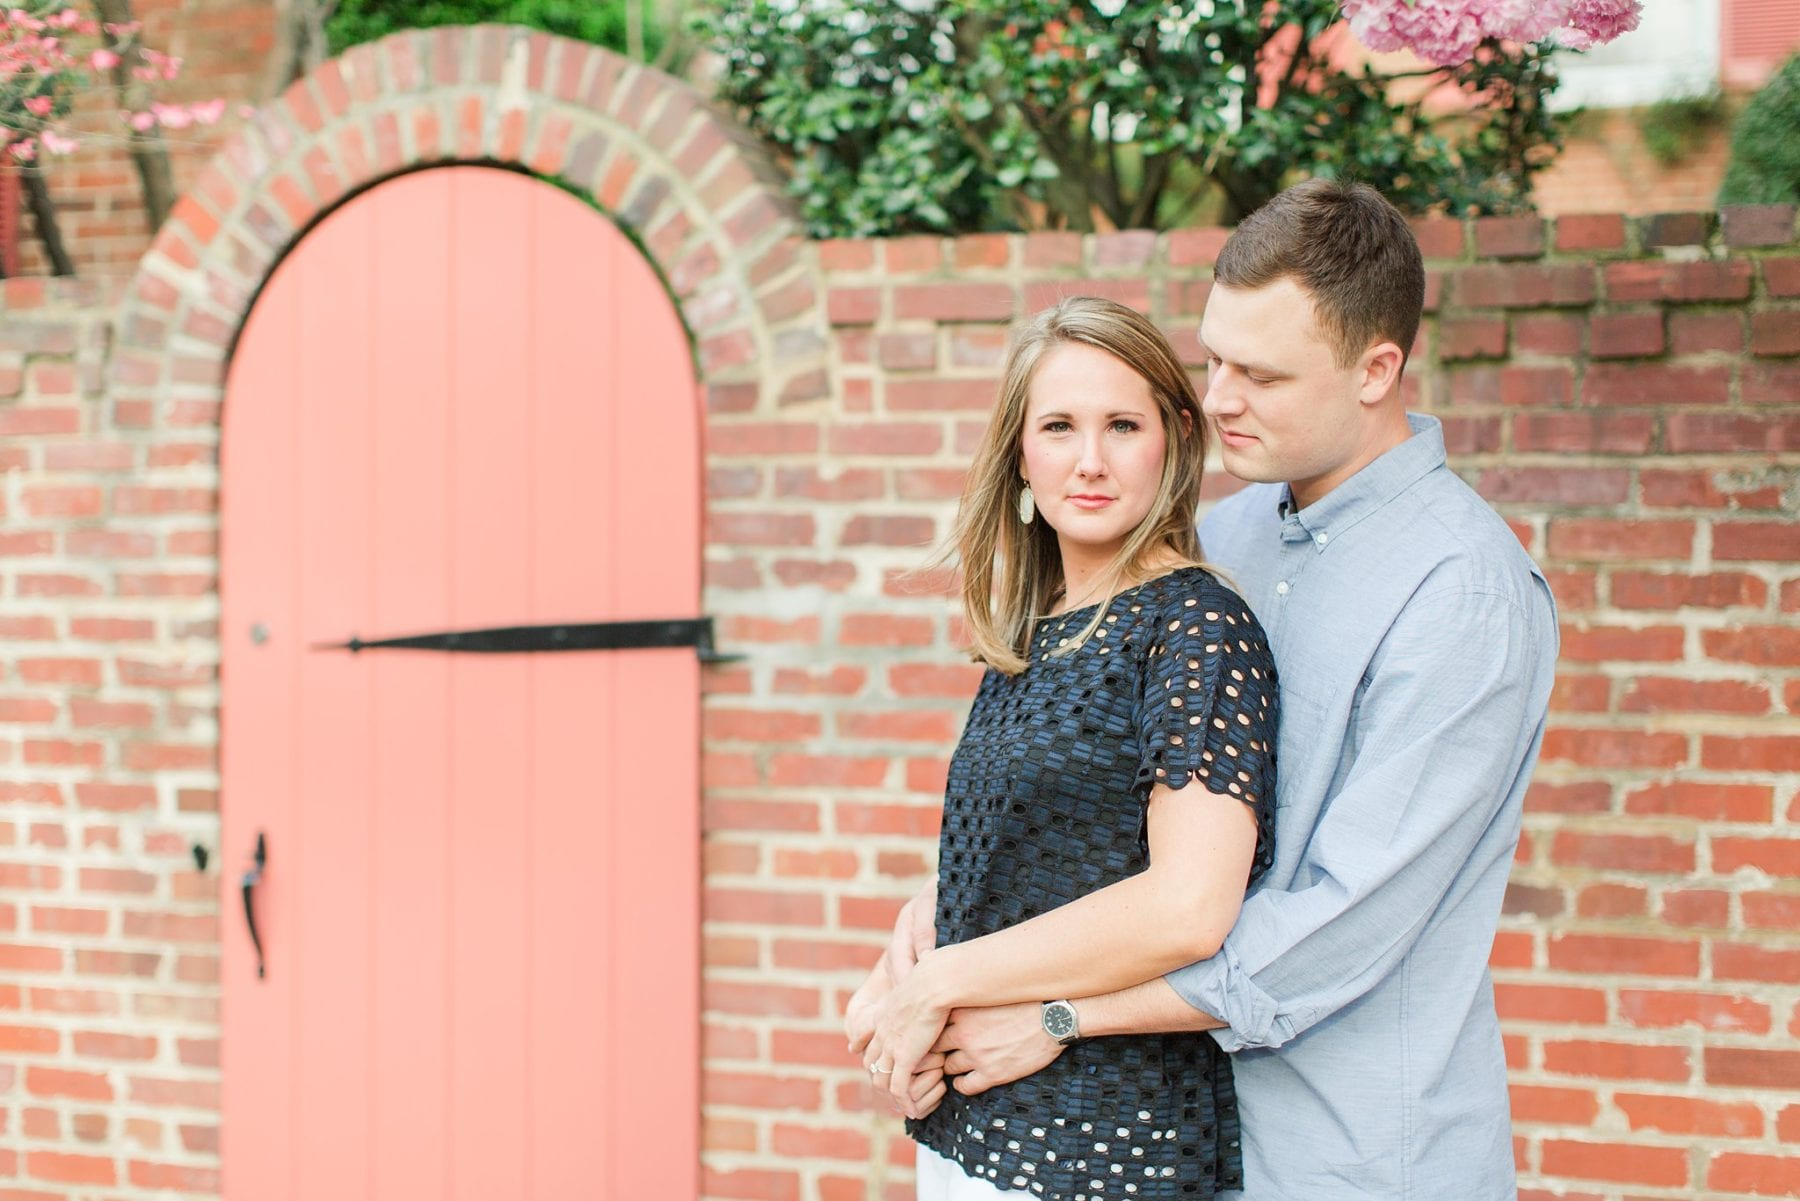 Springtime Old Town Alexandria Engagement Session Matt & Maxie Megan Kelsey Photography-185.jpg